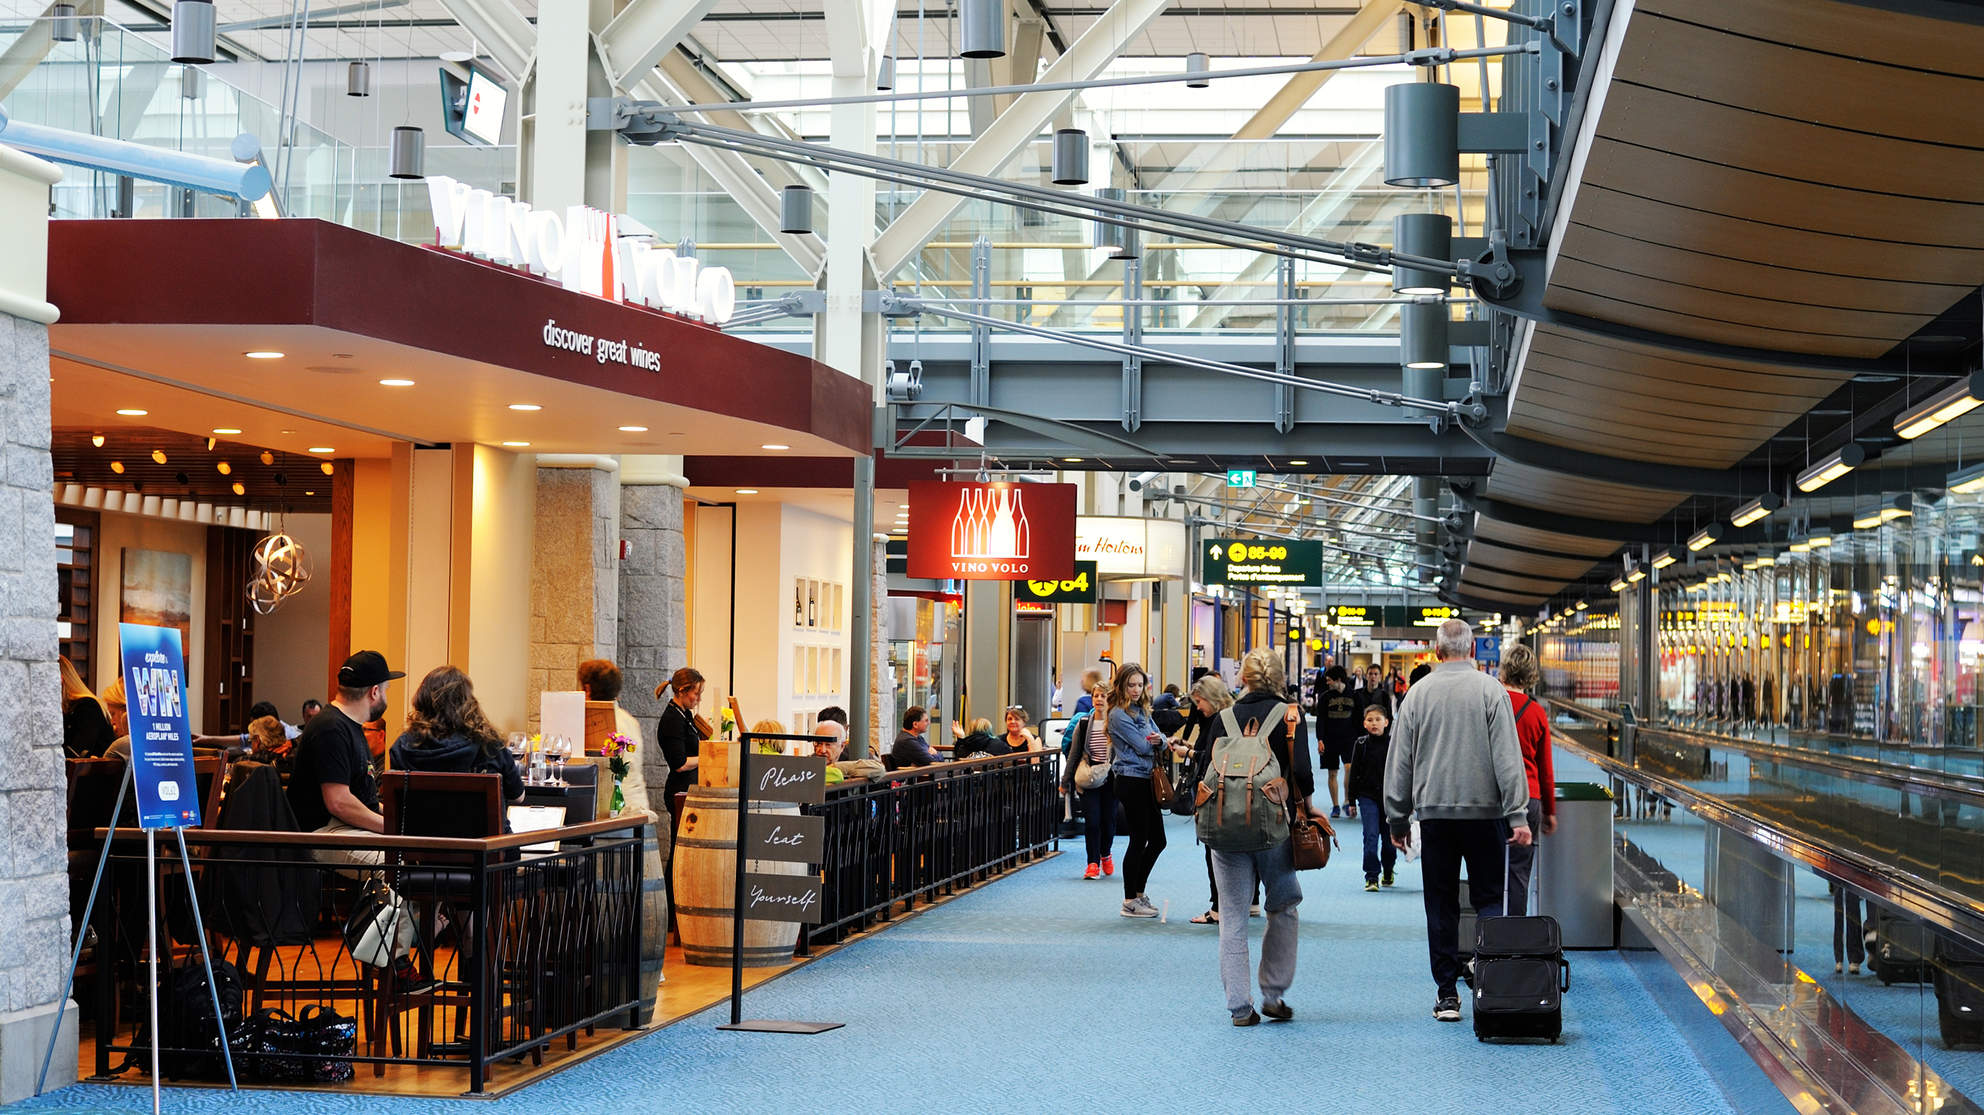 Here's What Food You Should NEVER Buy at an Airport